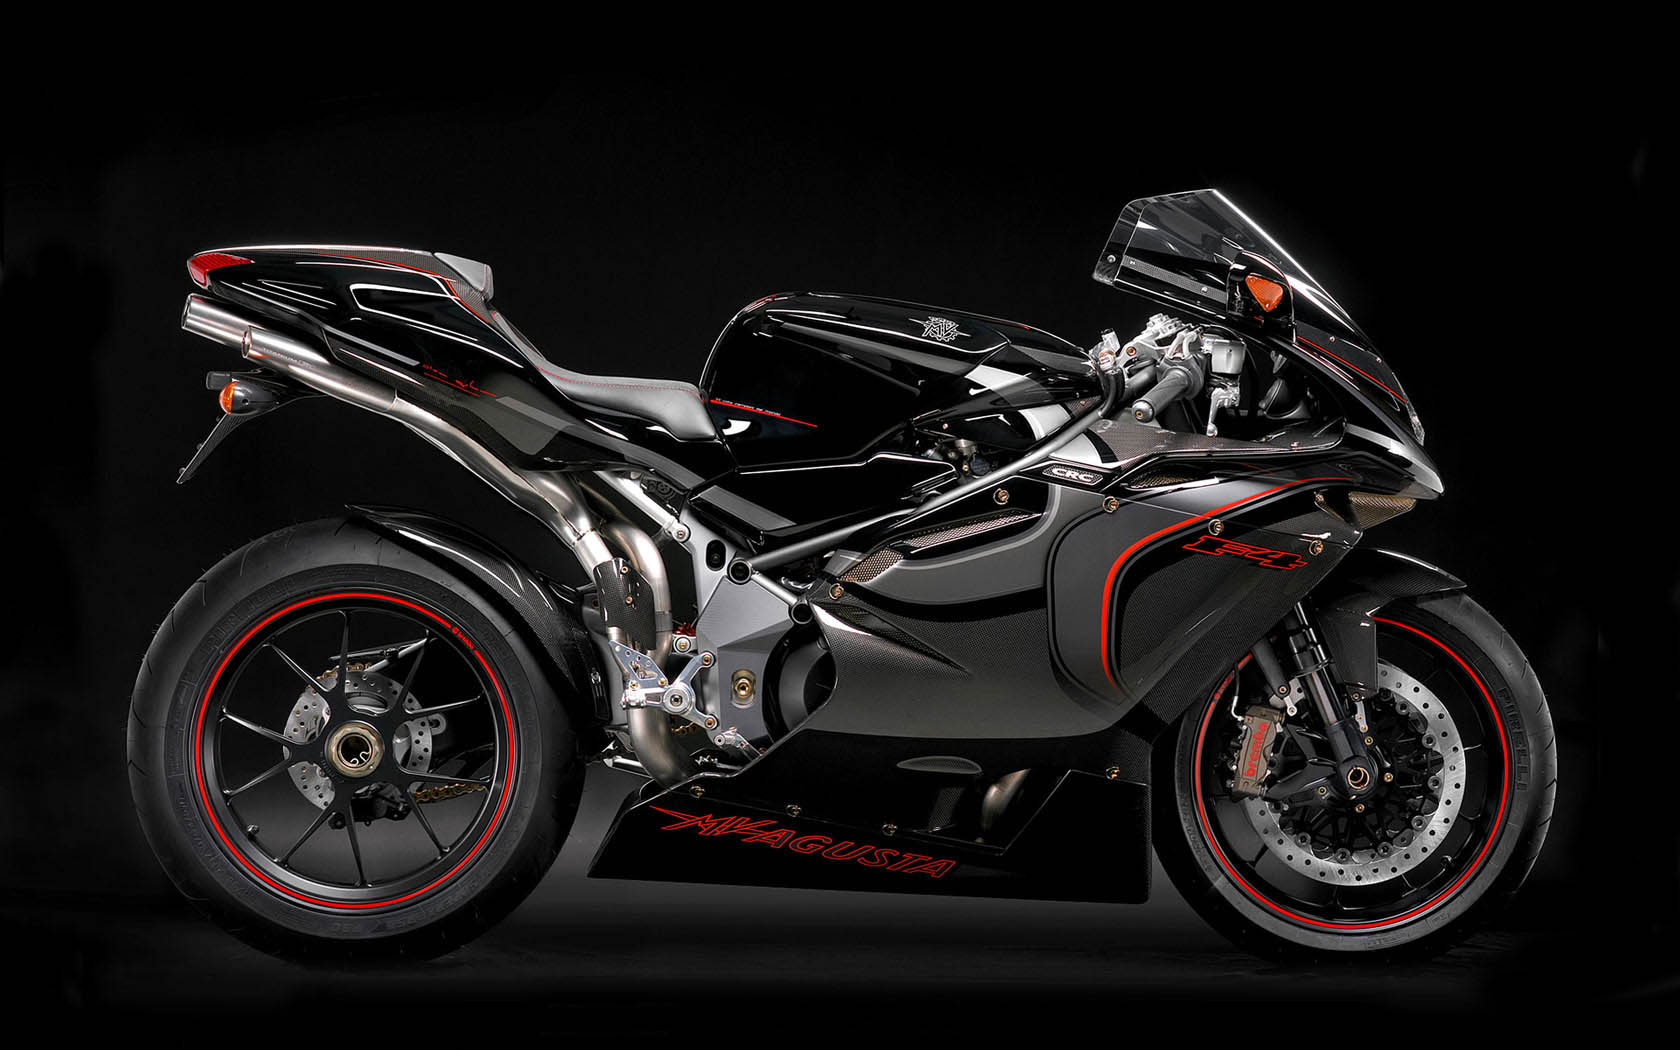 Cool Motorcycles Wallpaper 7141 Hd Wallpapers in Bikes   Imagescicom 1680x1050